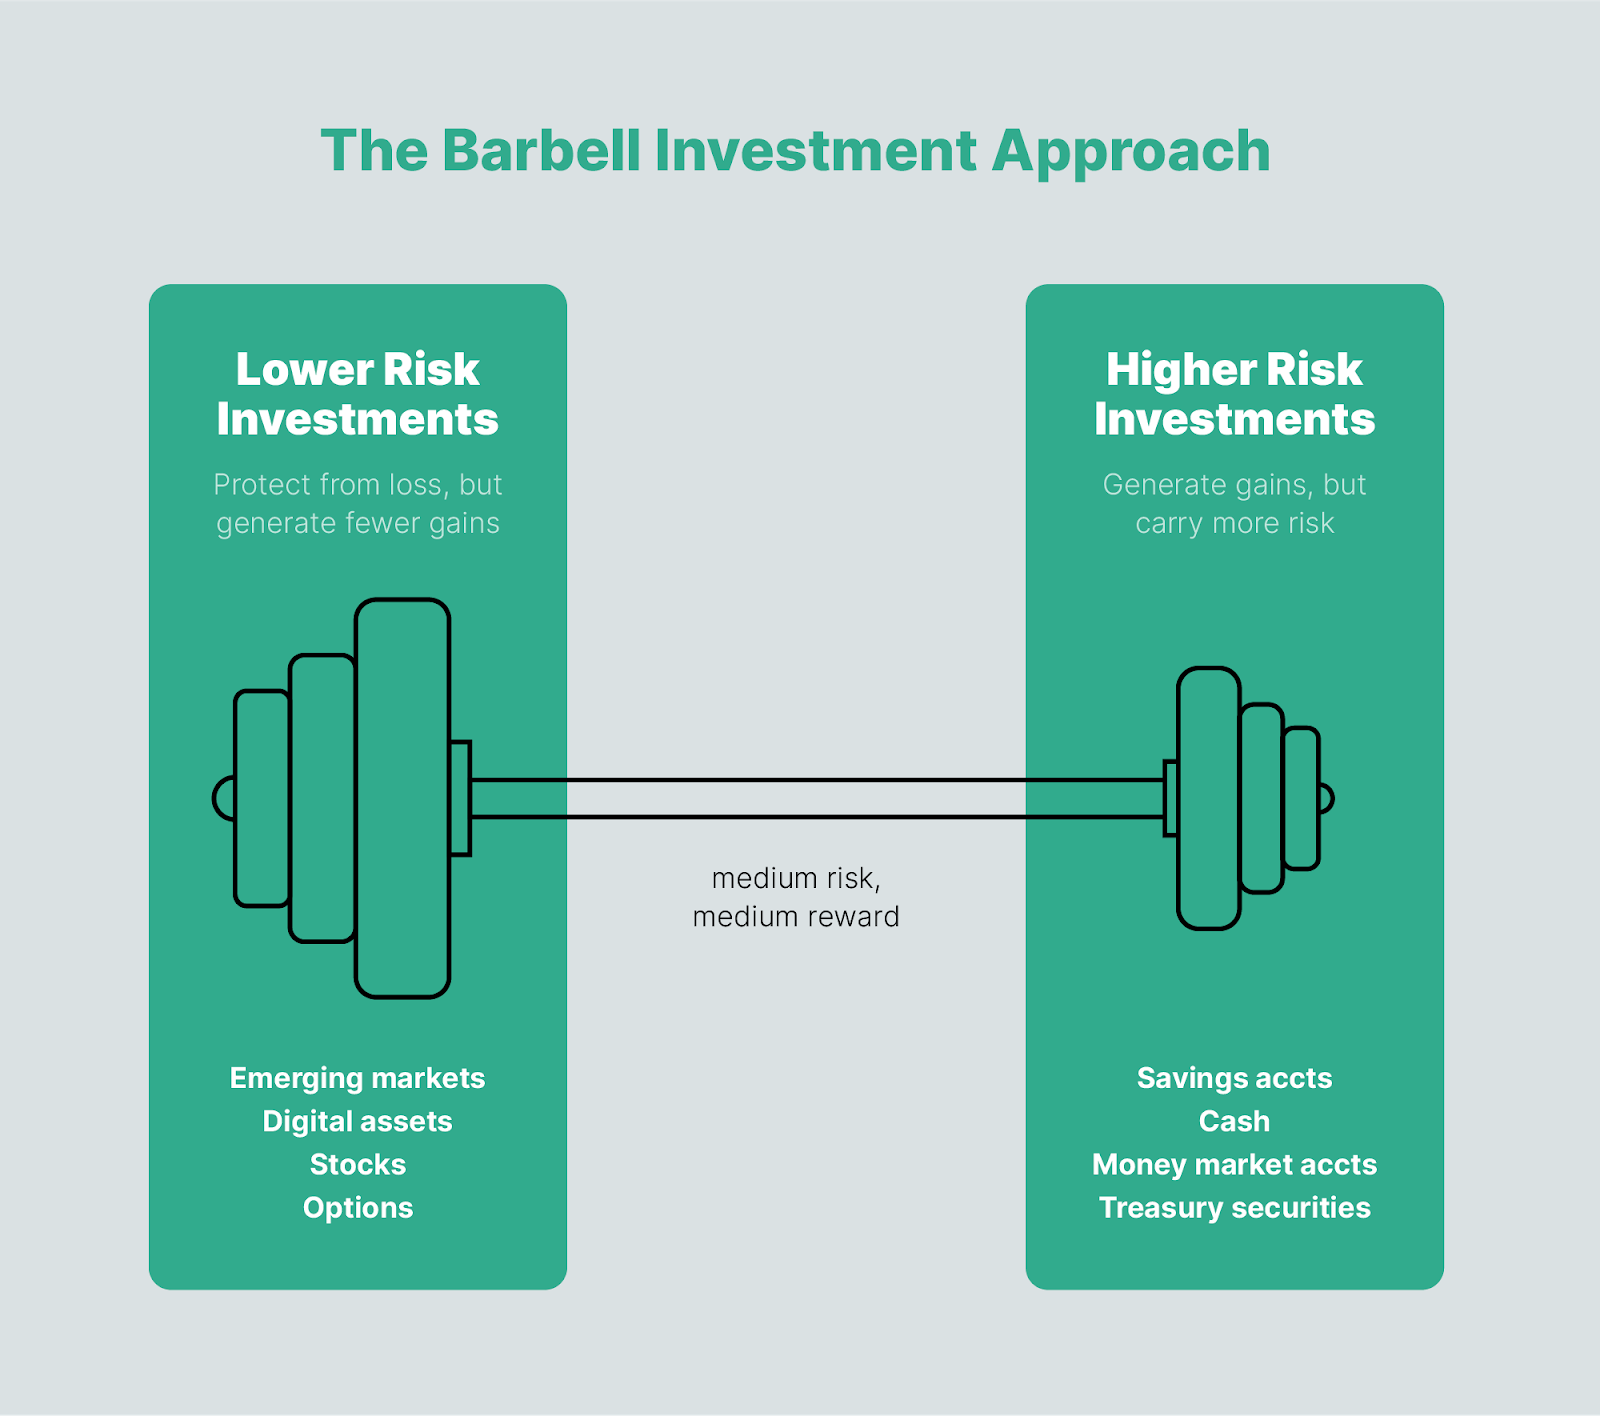 the barbell investment approach